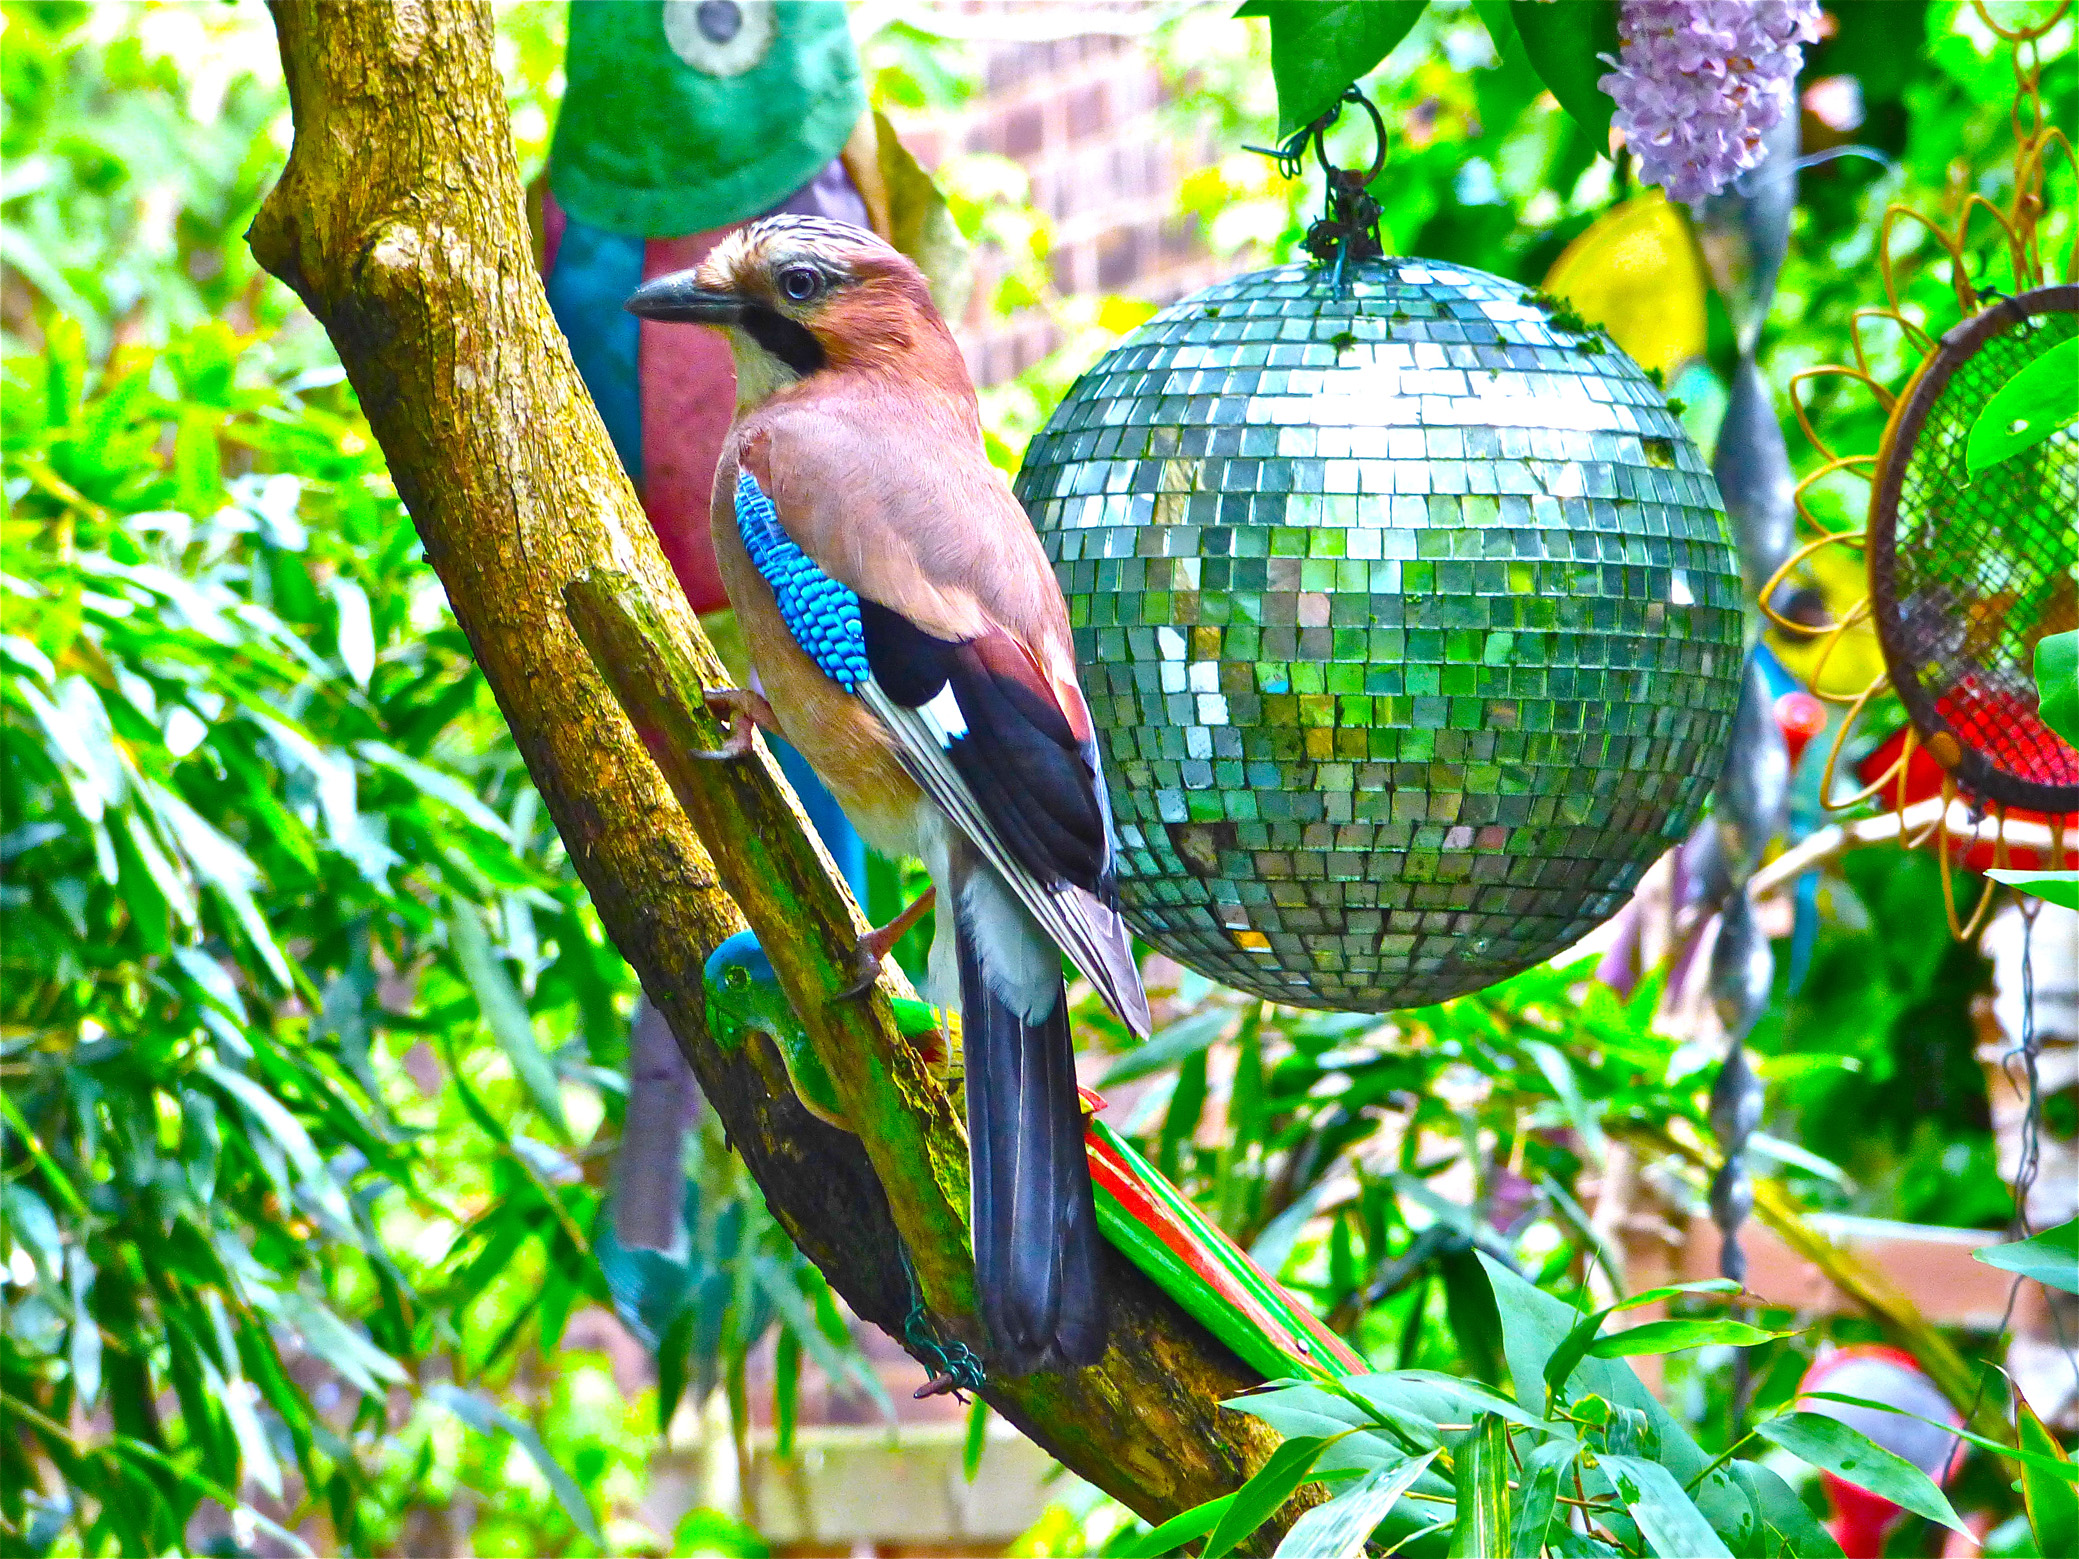 Quirky glitterball (Bill Oddie/PA)